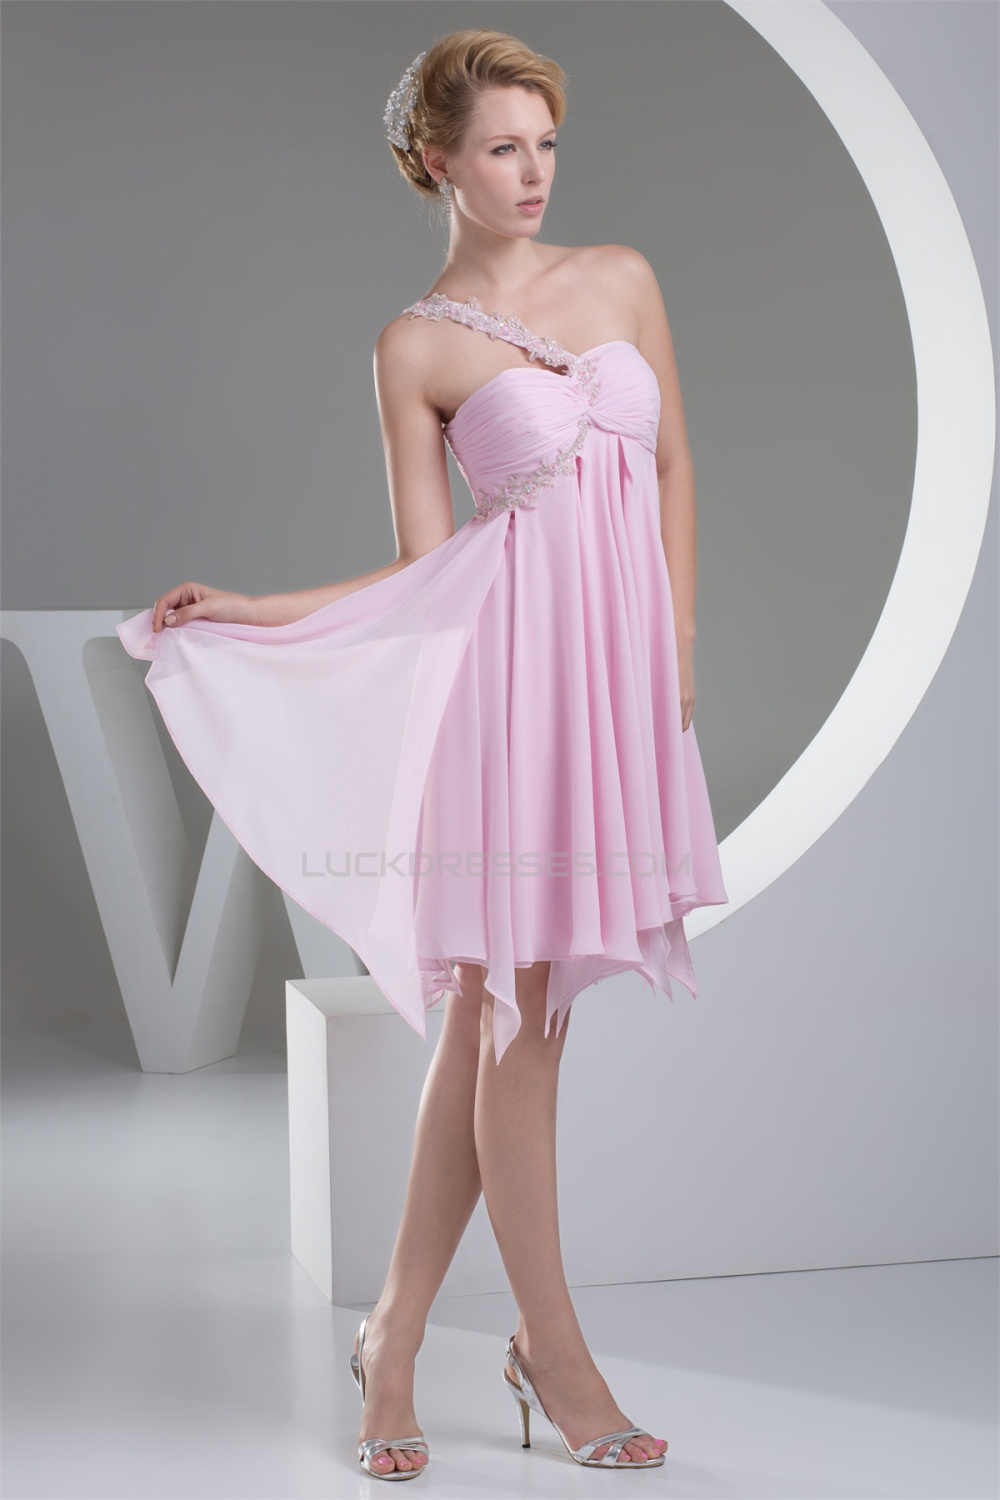 short maternity wedding dresses a line mini one shoulder chiffon pink 7353